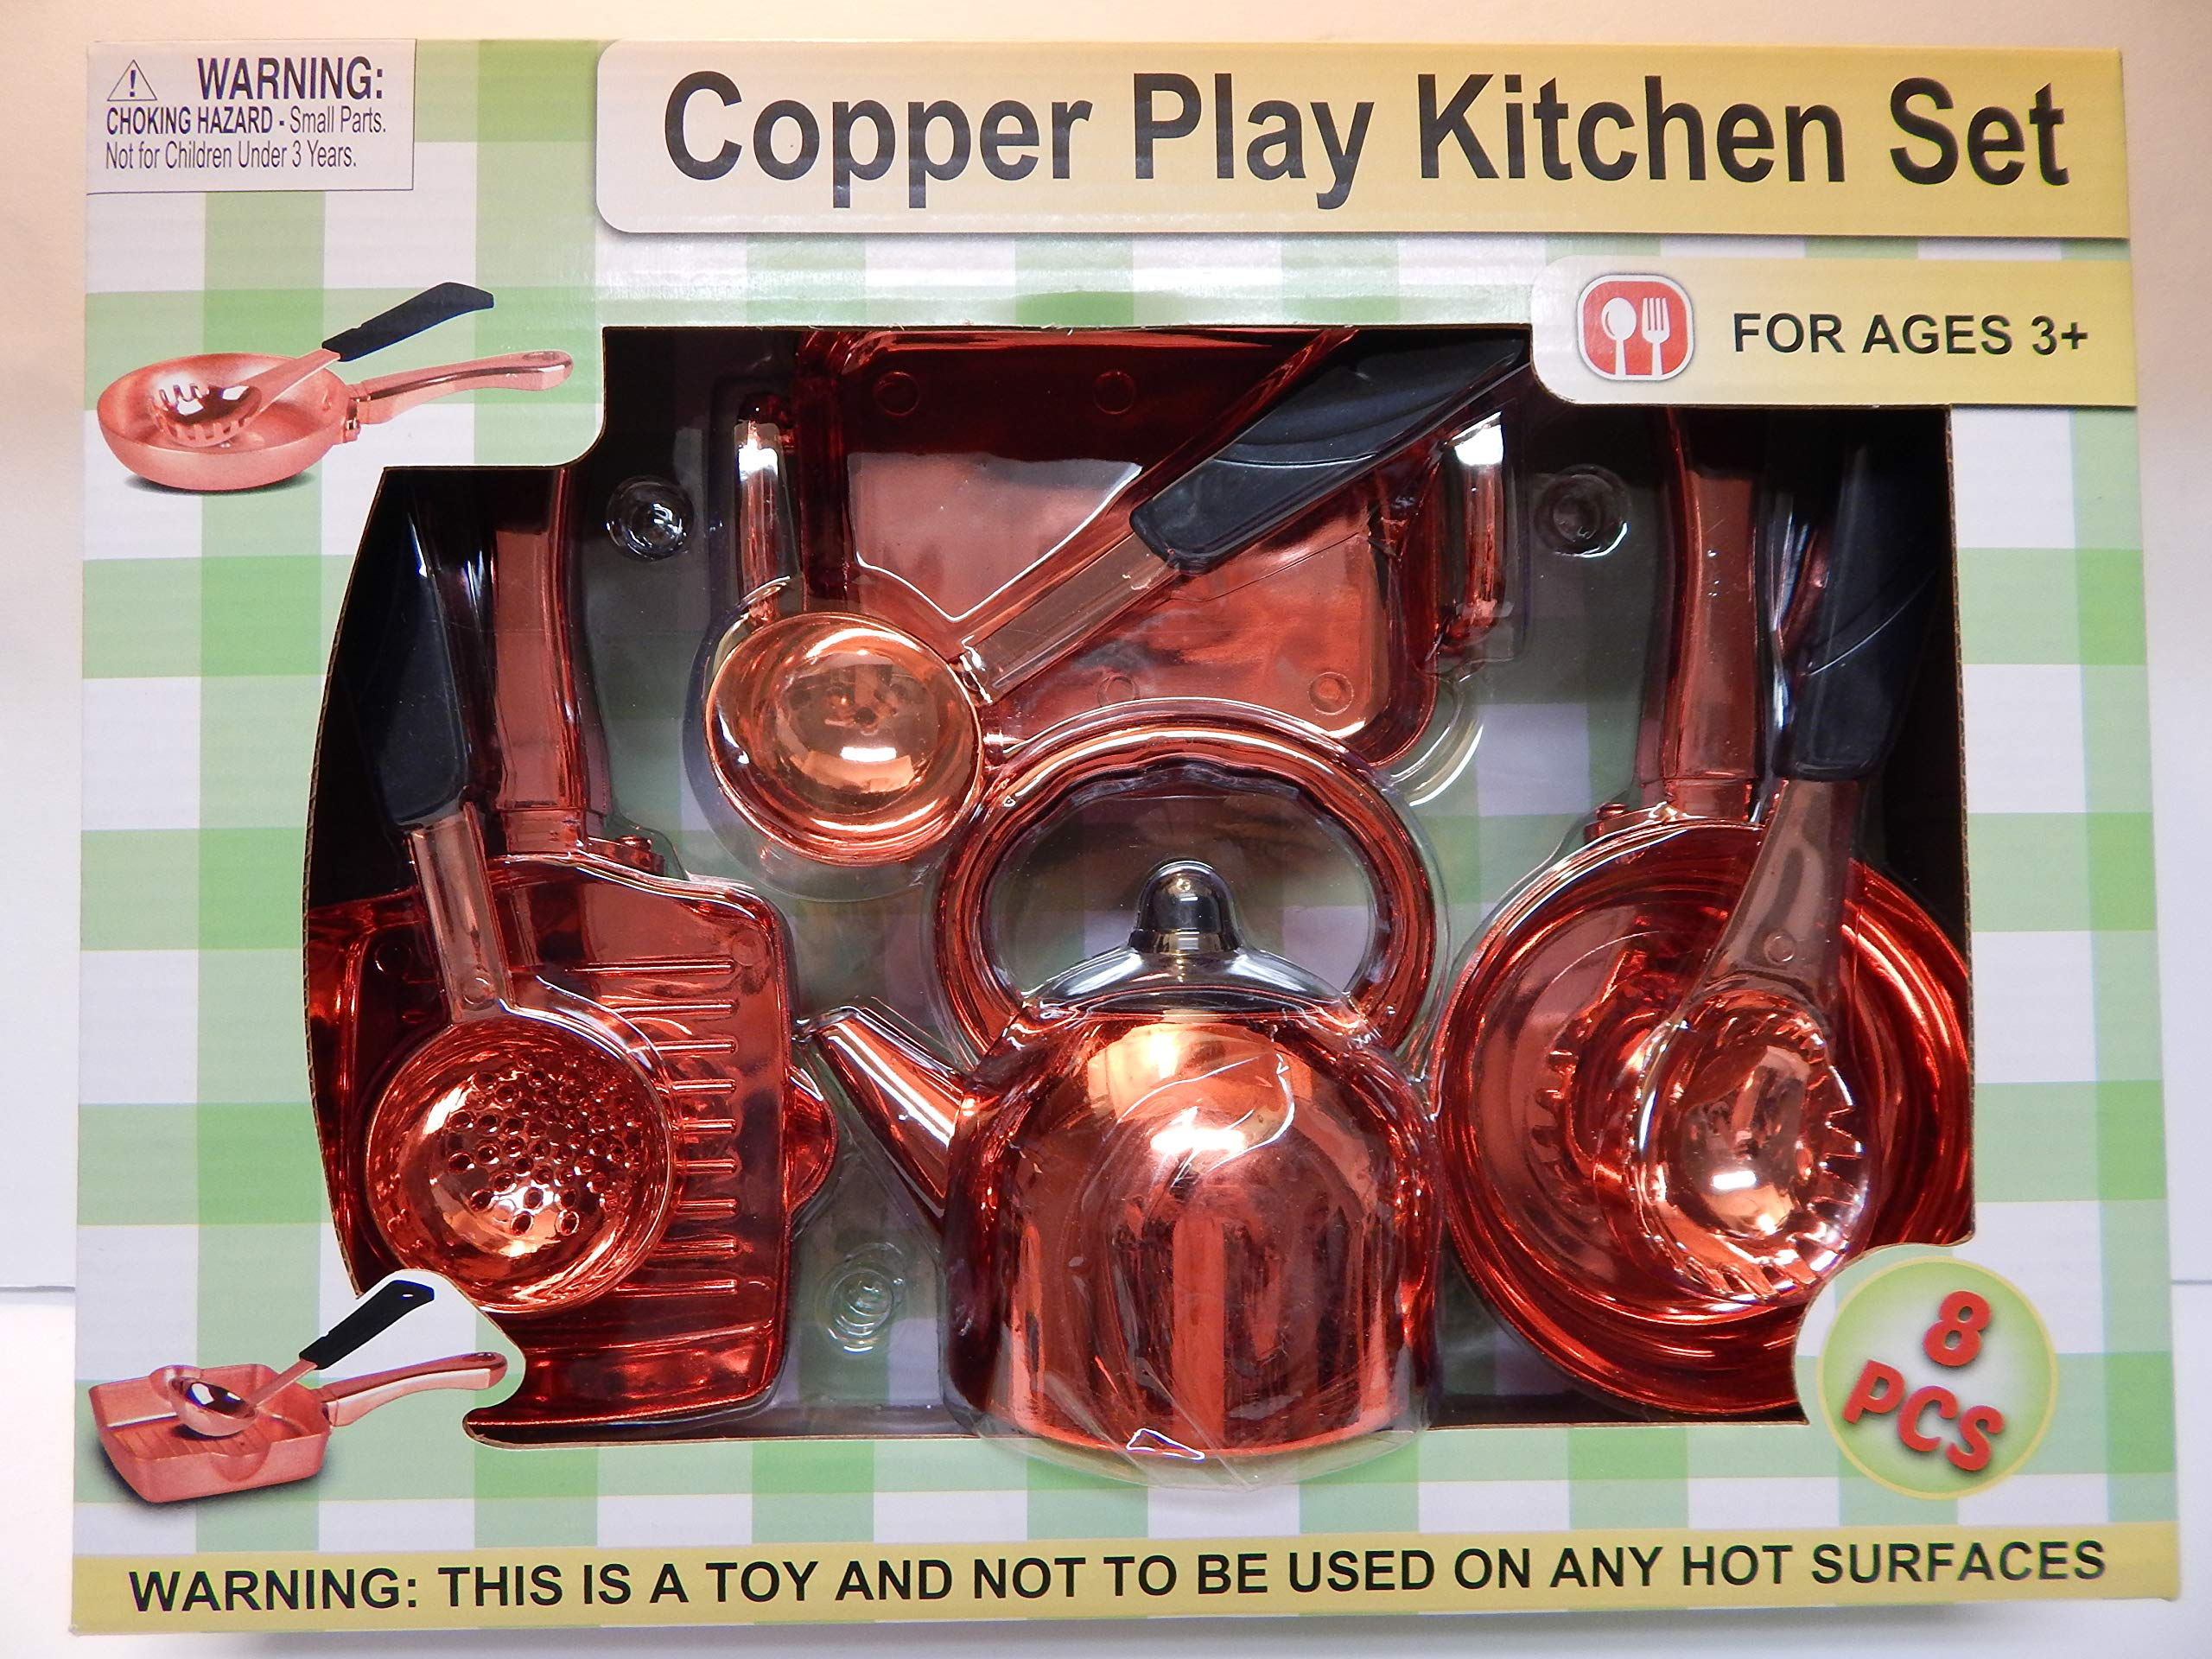 Copper Toy Pots and Pans Play Kitchen Set Play Copper Pots and Pans Toys for Kids - Kitchen Playset Pretend Copper Cookware Mini Cooking Utensils Development Toys for Children (8 Pieces)